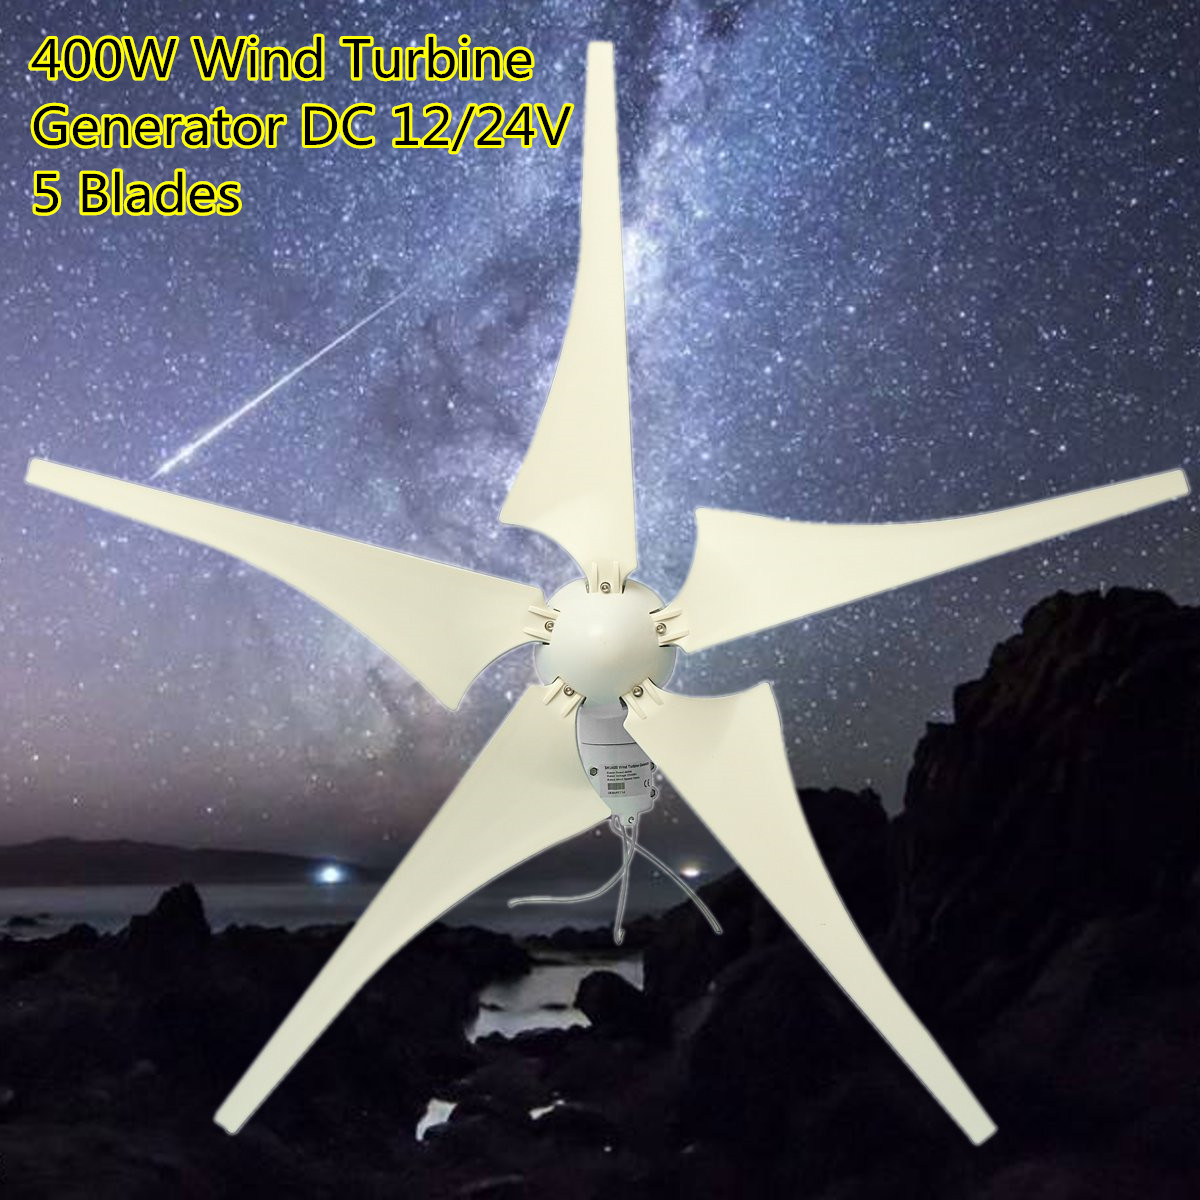 400W Wind Turbine Wind Power Generator 5 Blades + DC 12V/24V Waterproof Charge Controller 300/600W Wind Energy Turbine Generator 400w wind generator 12v 24v 48v maglev generator wind turbine with water proof controller 600watt 2 blades 1 3m started